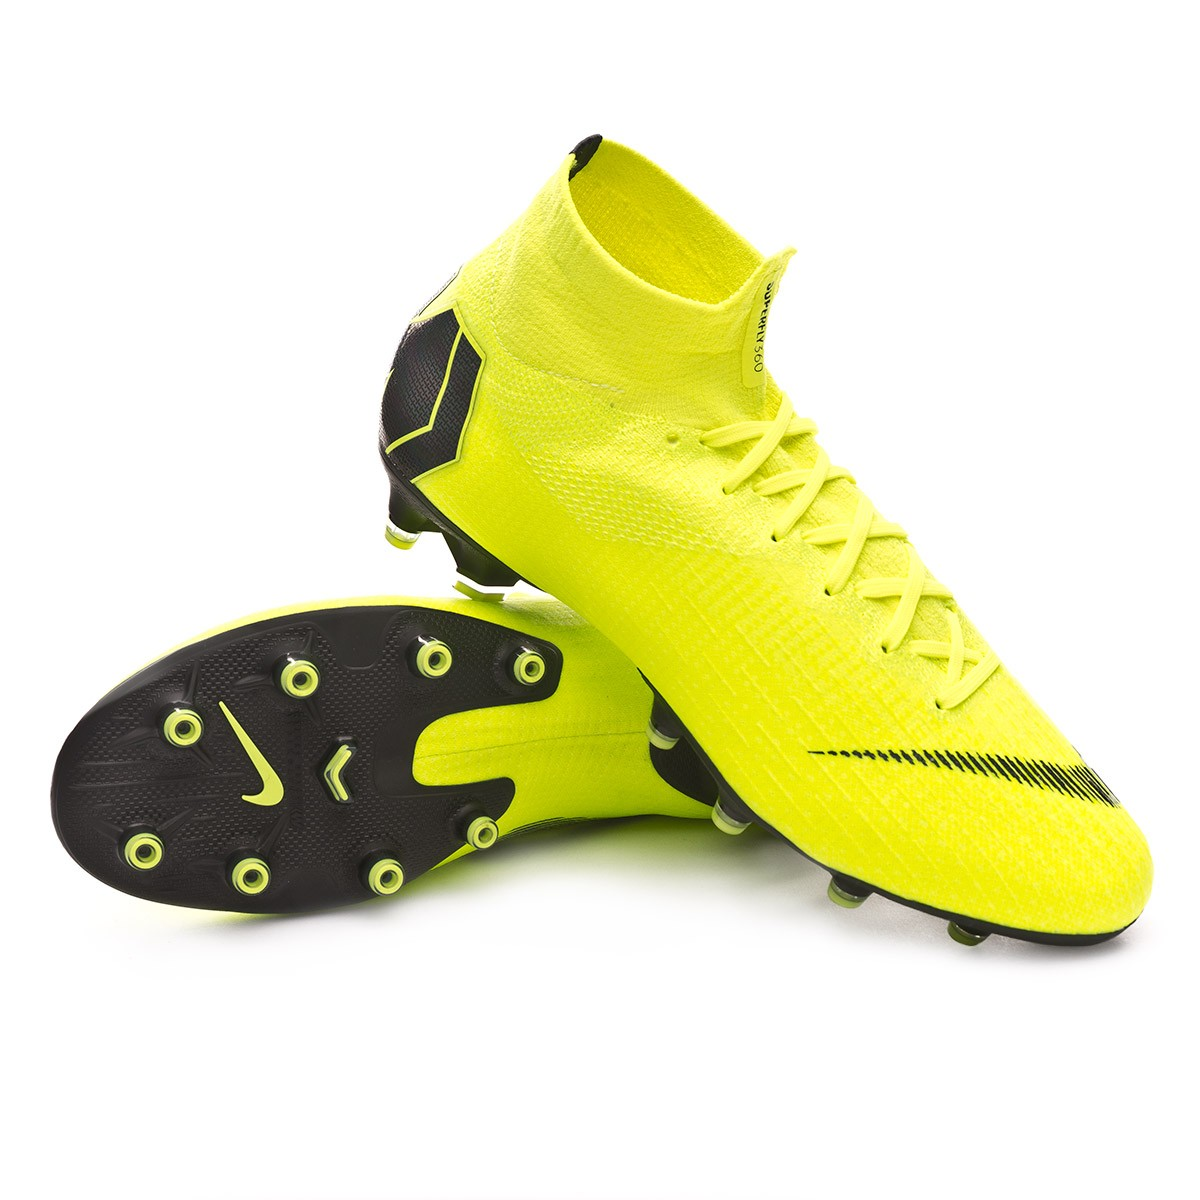 960ac4f3cd2 Football Boots Nike Mercurial Superfly VI Elite AG-Pro Volt-Black ...